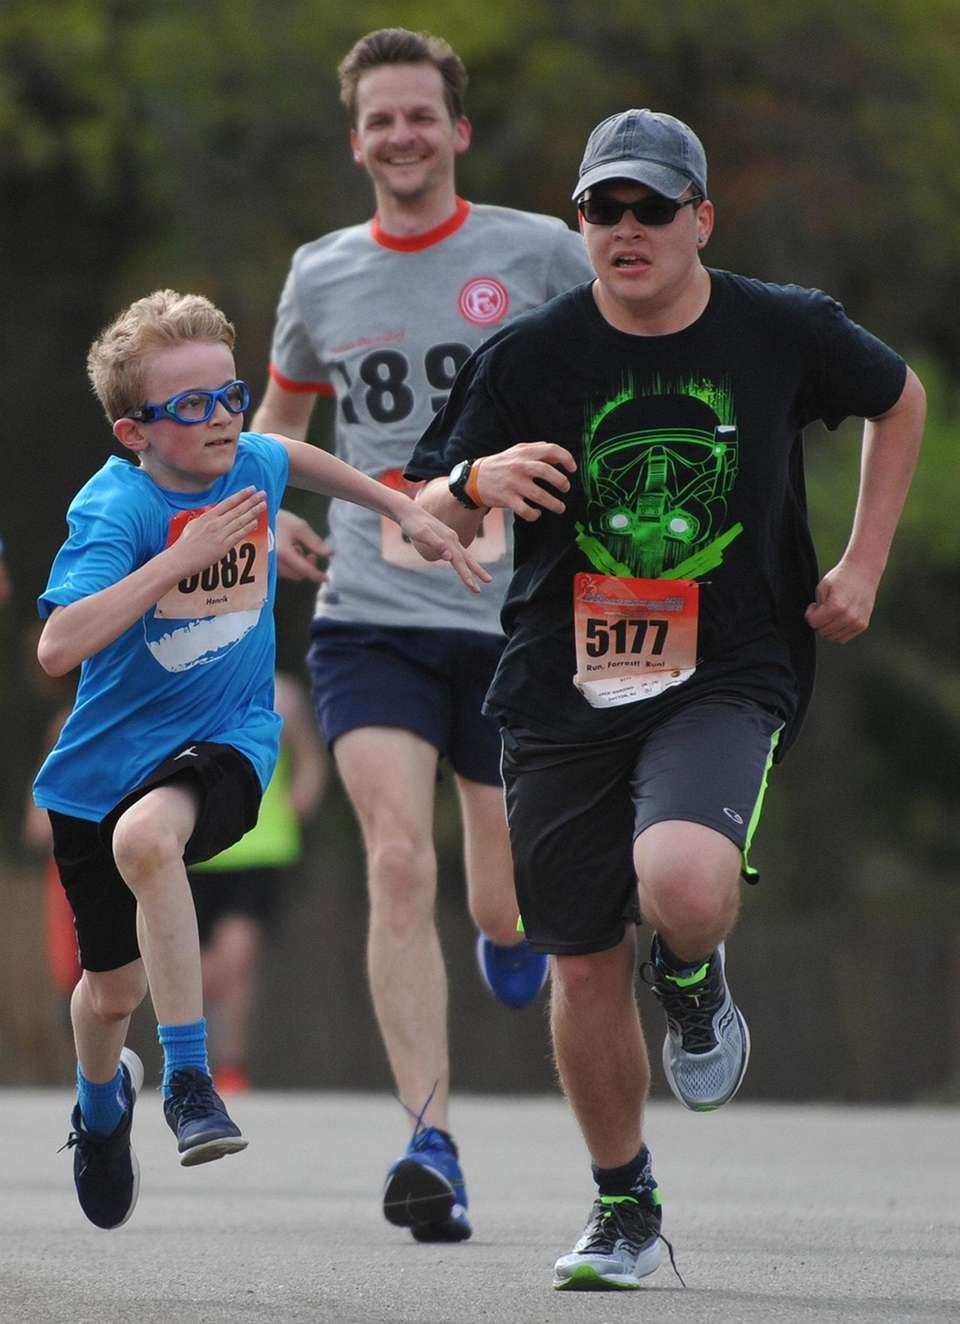 Henrik Kollmeier, 10, of Farmingdale, left, races toward